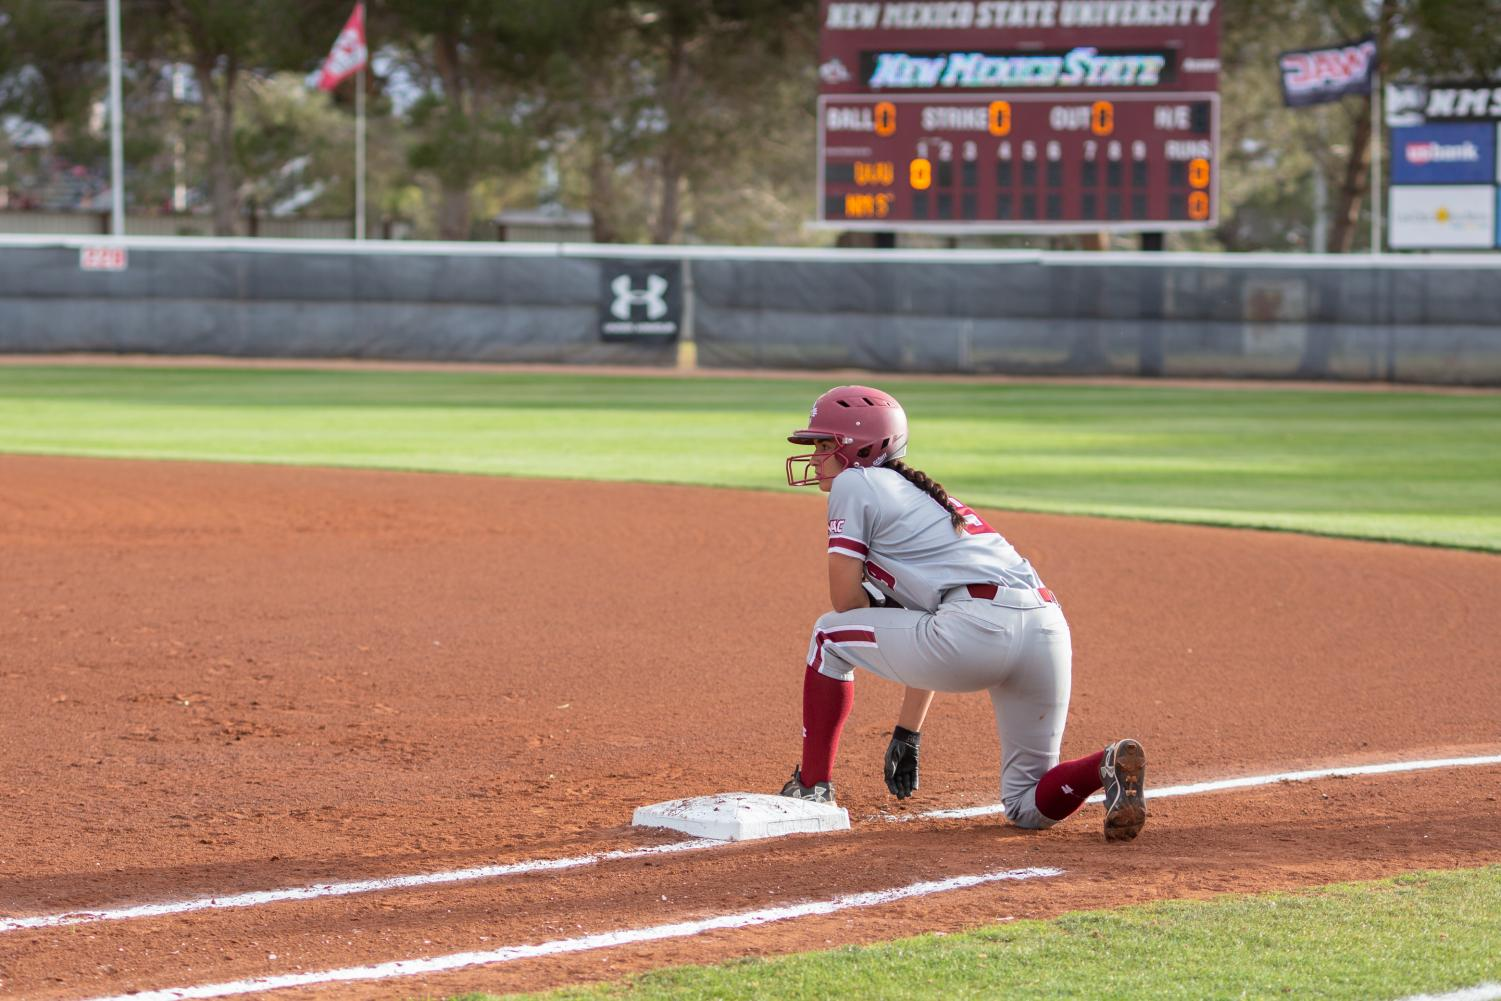 New Mexico State beats UMKC 12-10 and 11-6 to ensure a winning record in-conference for the seventh straight season.